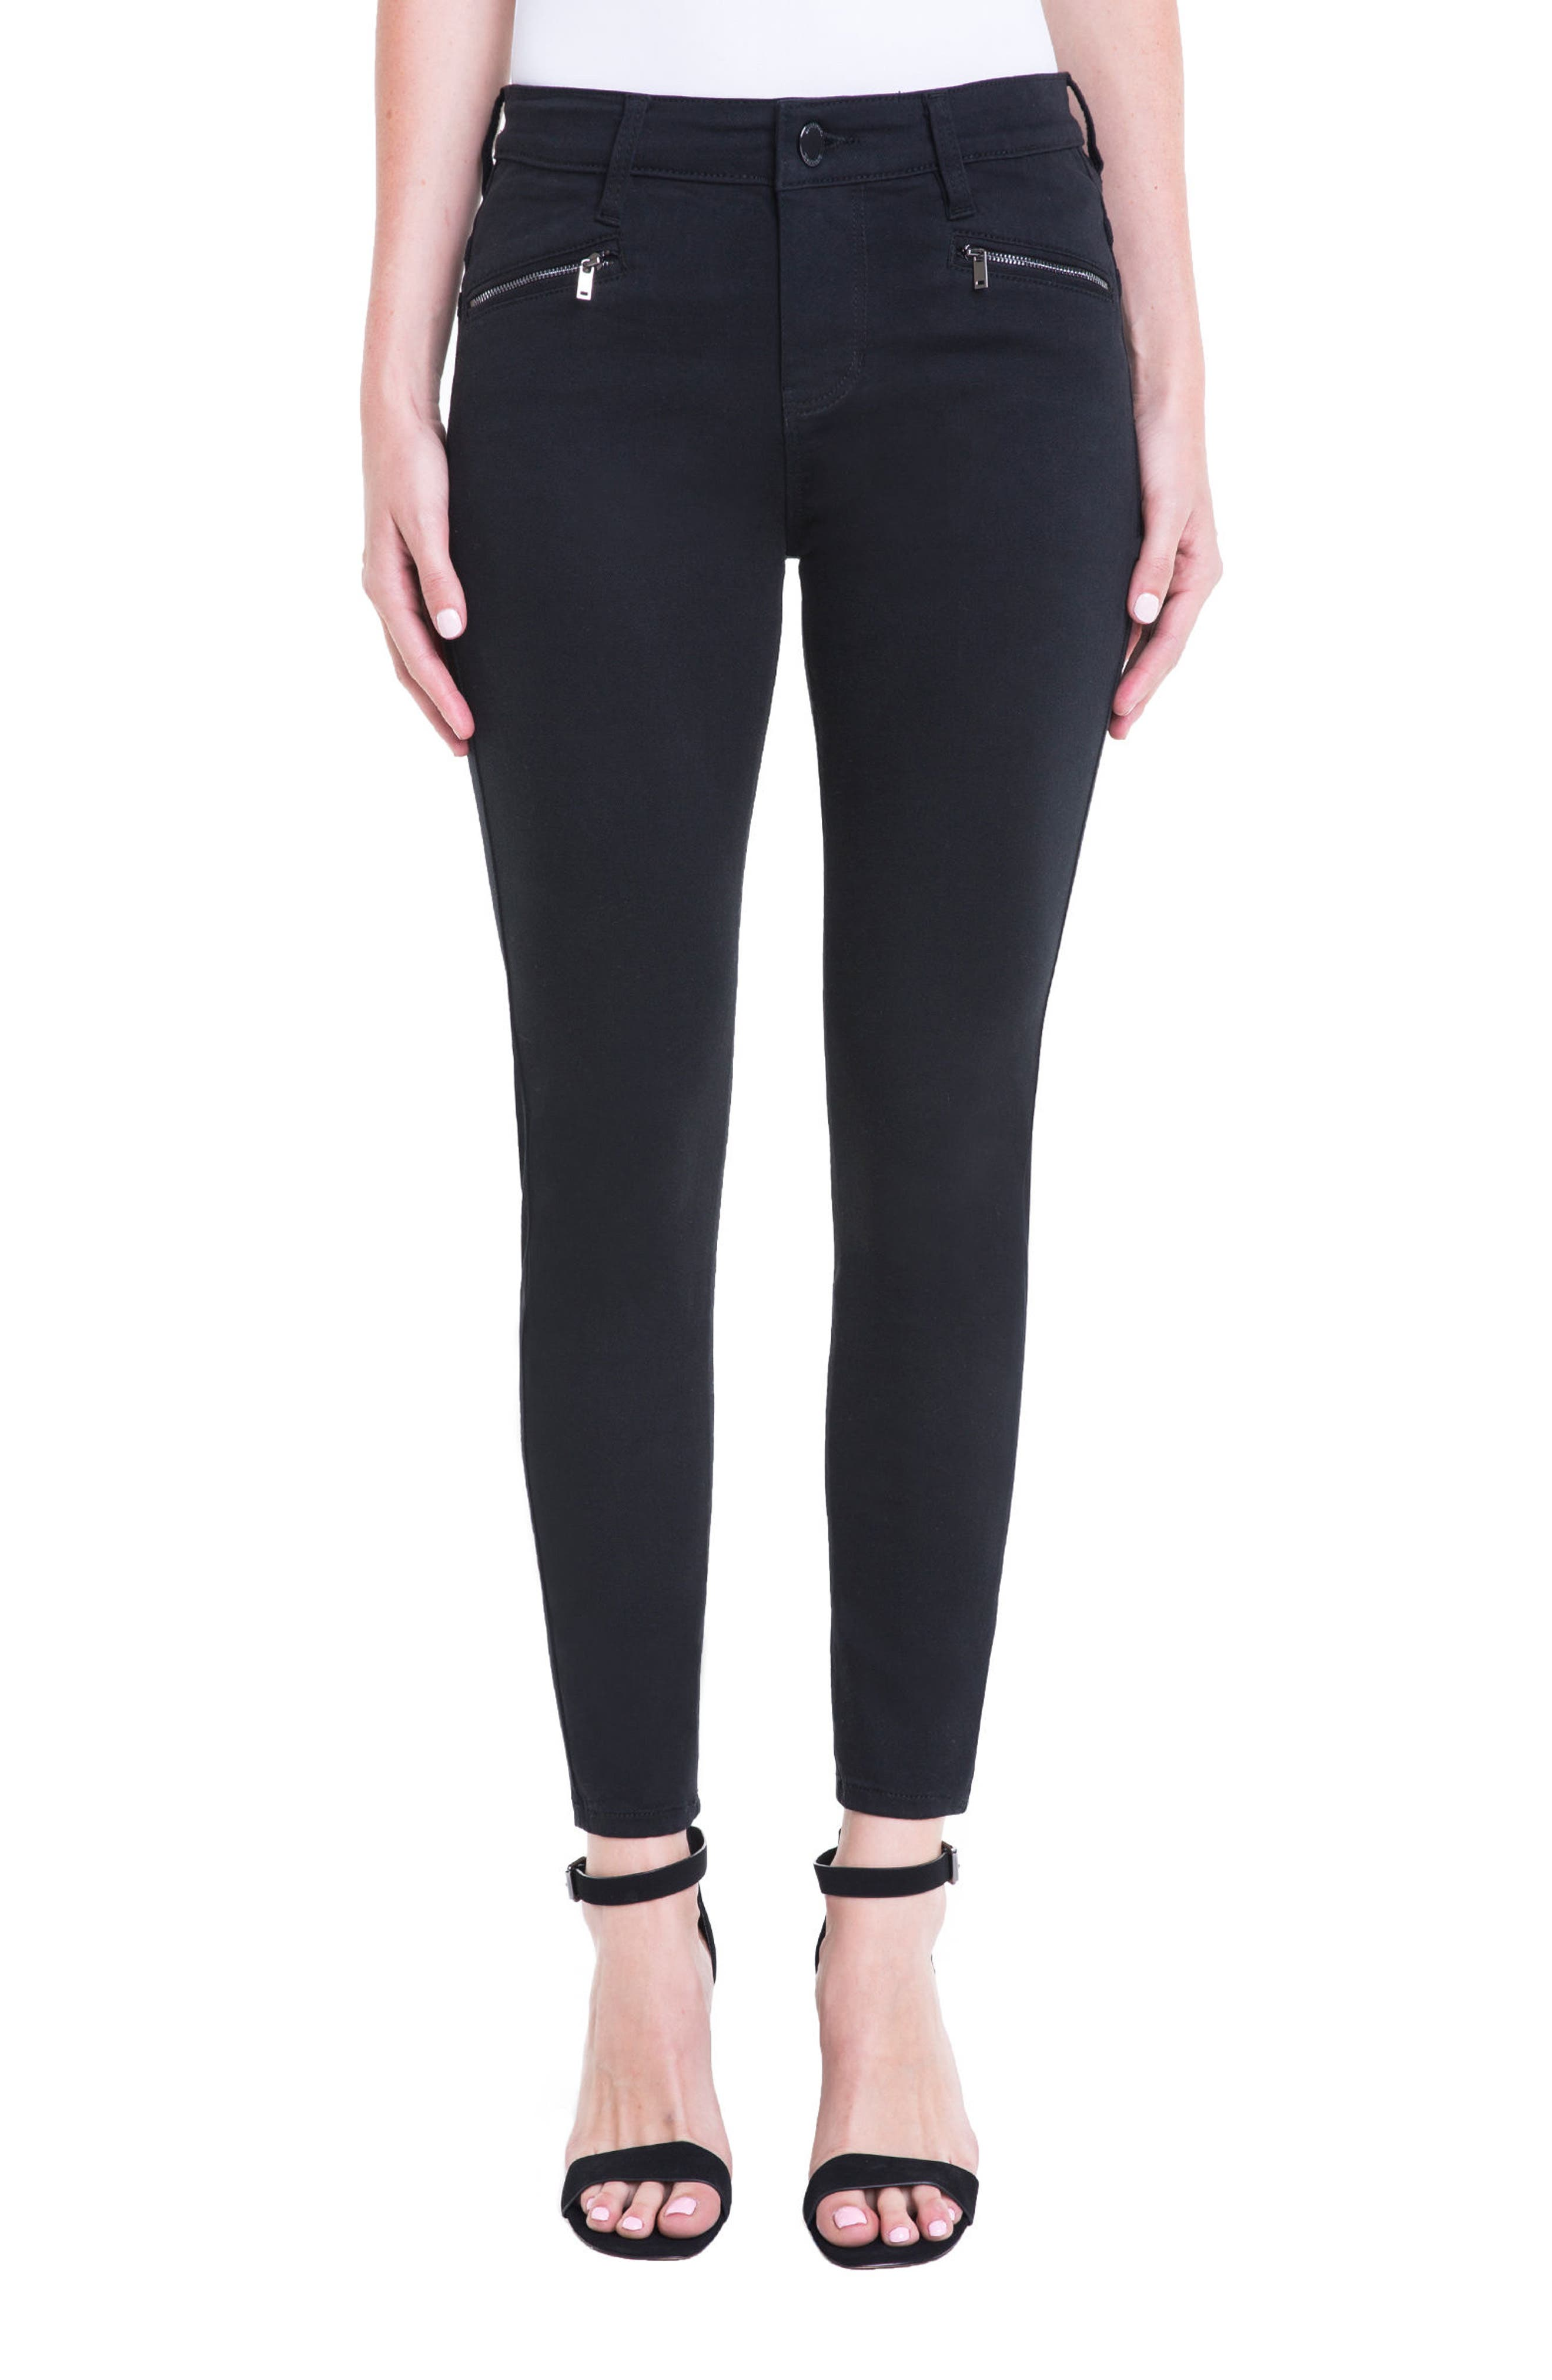 Remy Zipper Stretch Skinny Jeans,                         Main,                         color,